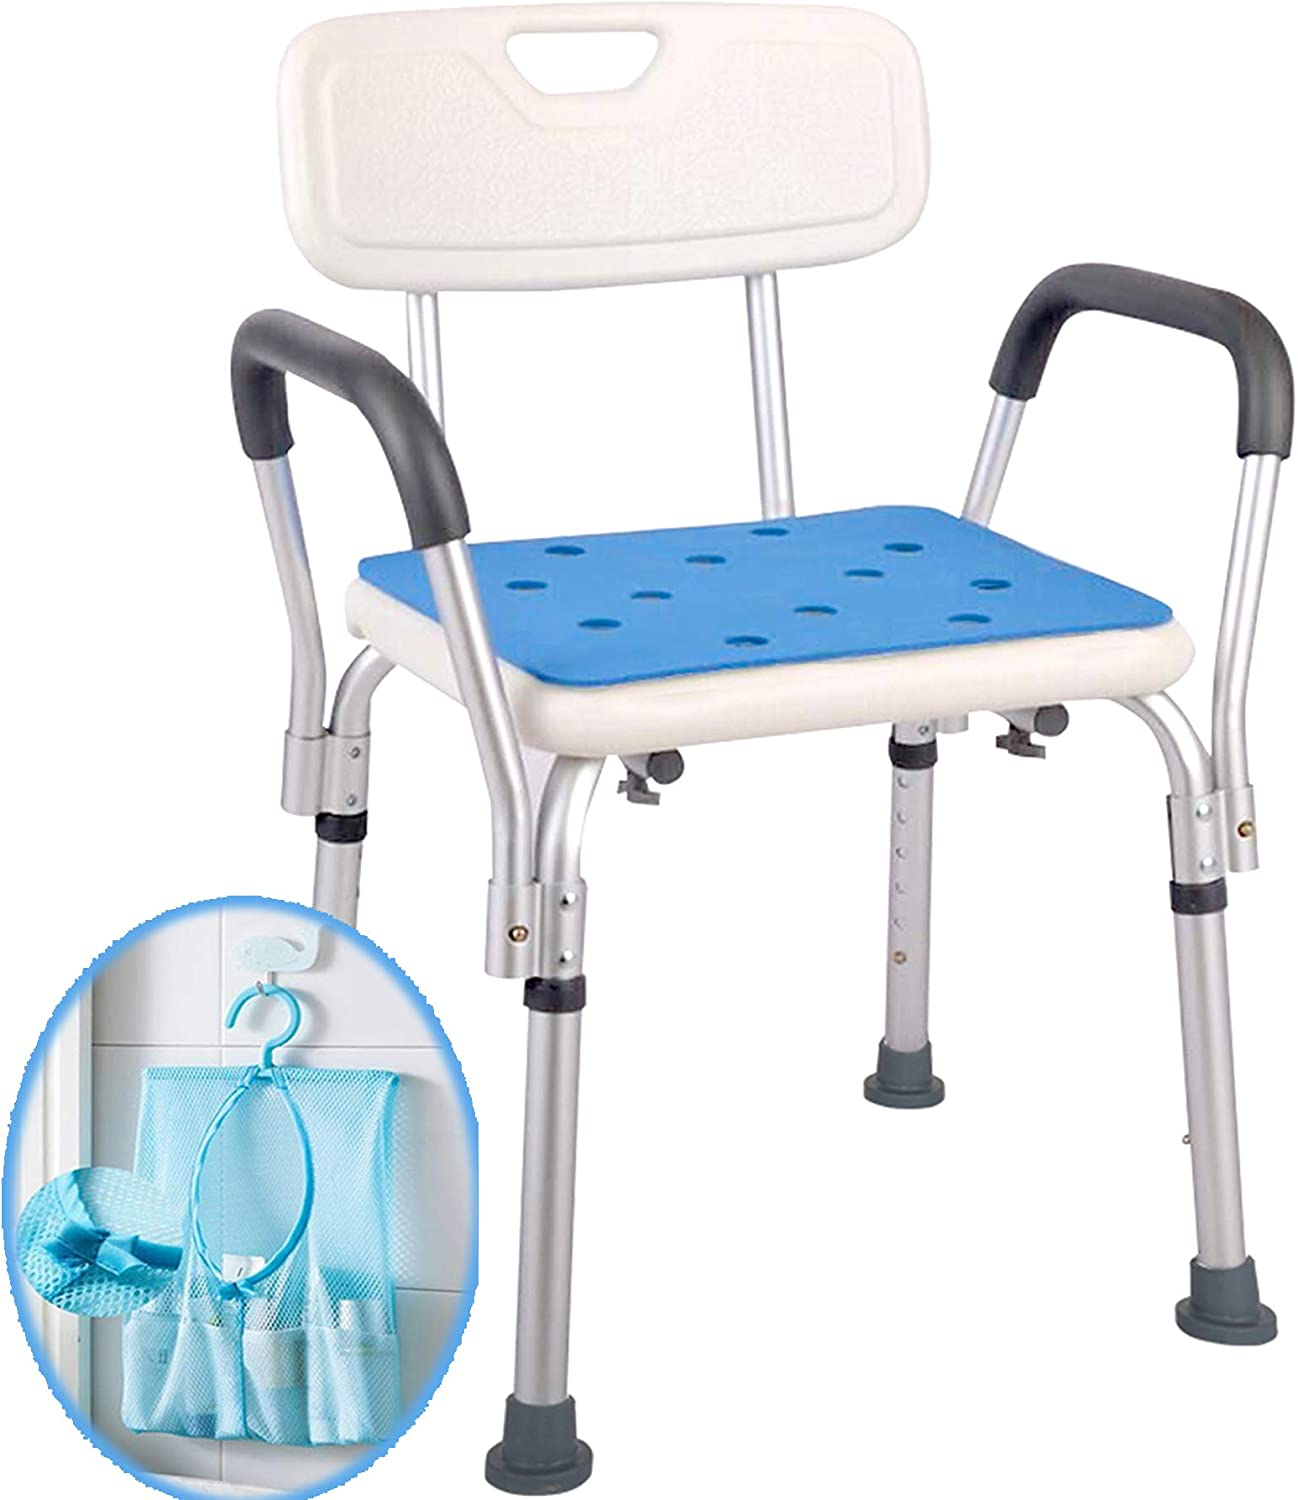 Shower Chair for Elderly with Rails - Easily Adjustable Benches, Tool-Free  Assembly Seat with Arms & Back for Seniors - Portable Handicap Bathtub